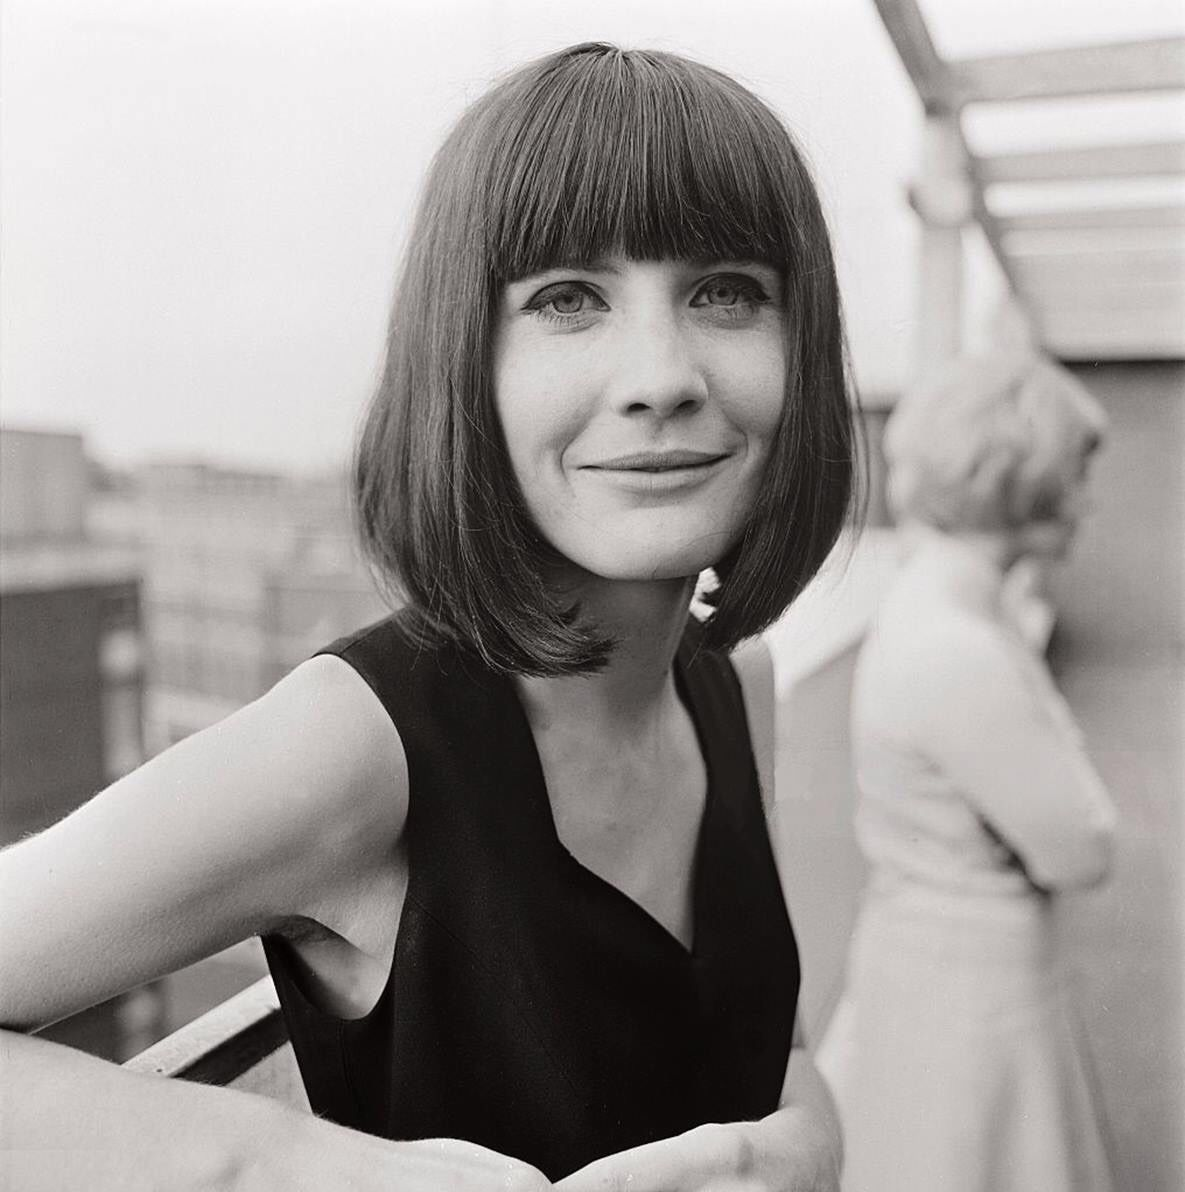 Sandie Shaw photographed by Stanley Bielecki in London